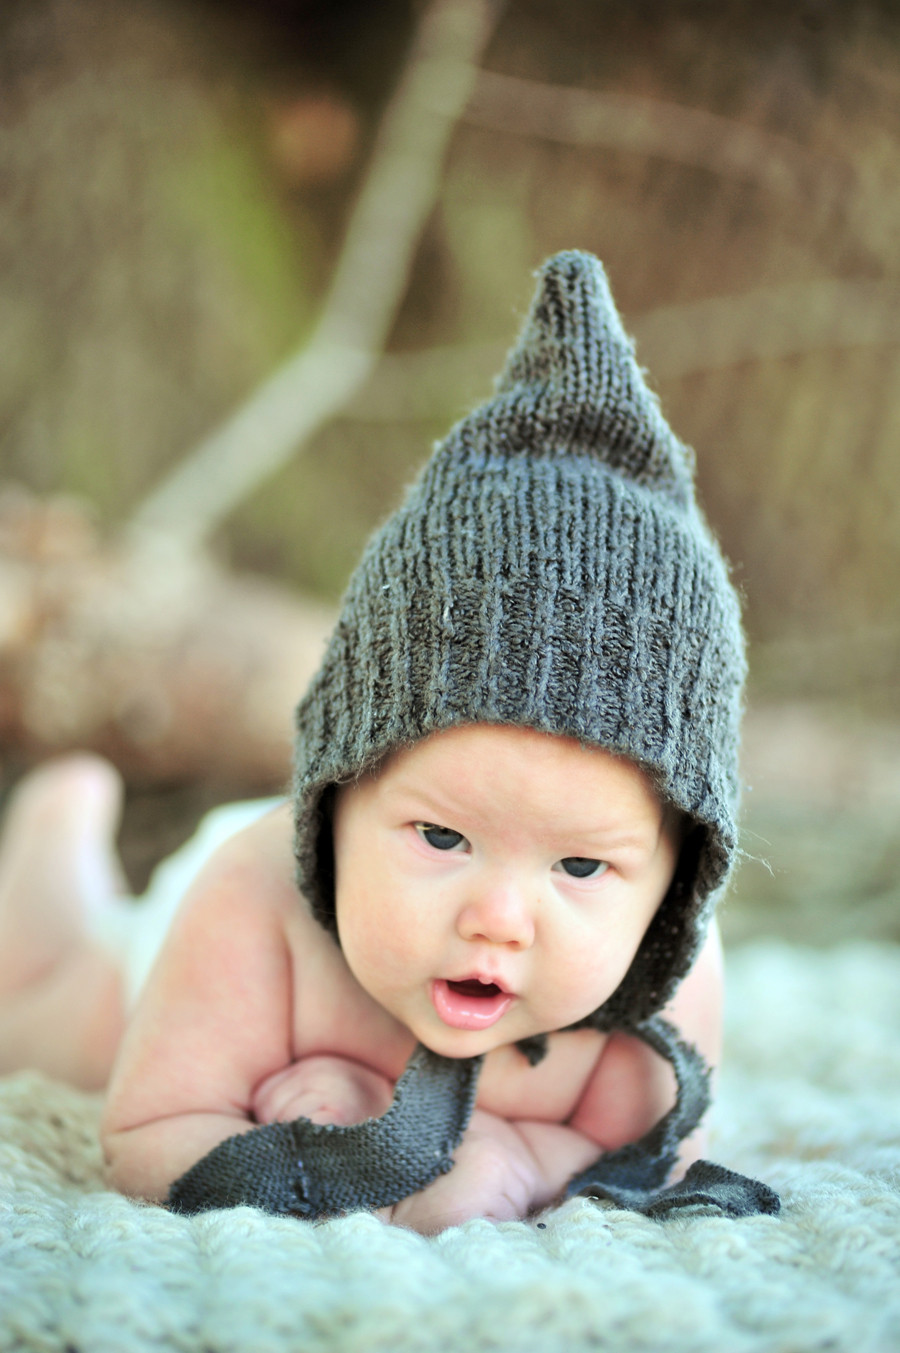 Best ideas about DIY Baby Hats . Save or Pin DIY Baby Pixie Hats from Old Sweaters – Domestic Geek Girl Now.